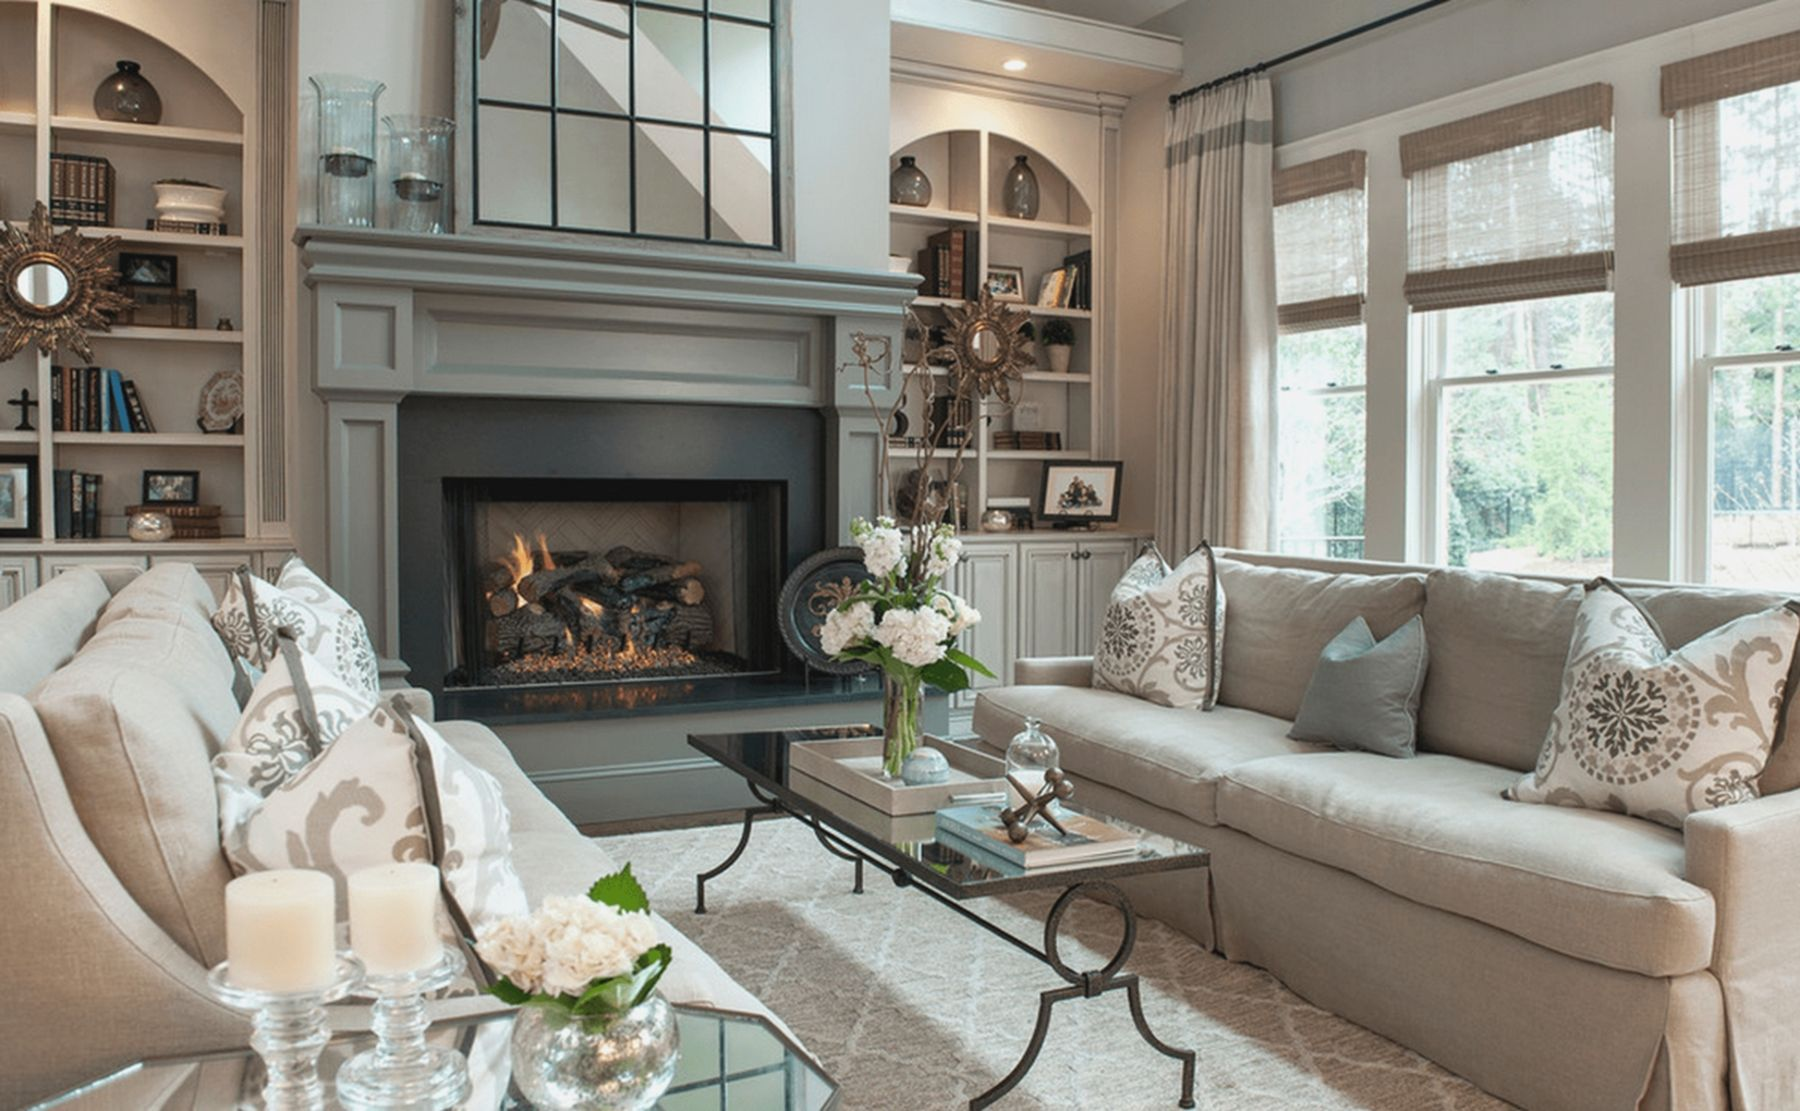 10 classic fireplace design ideas to increase your